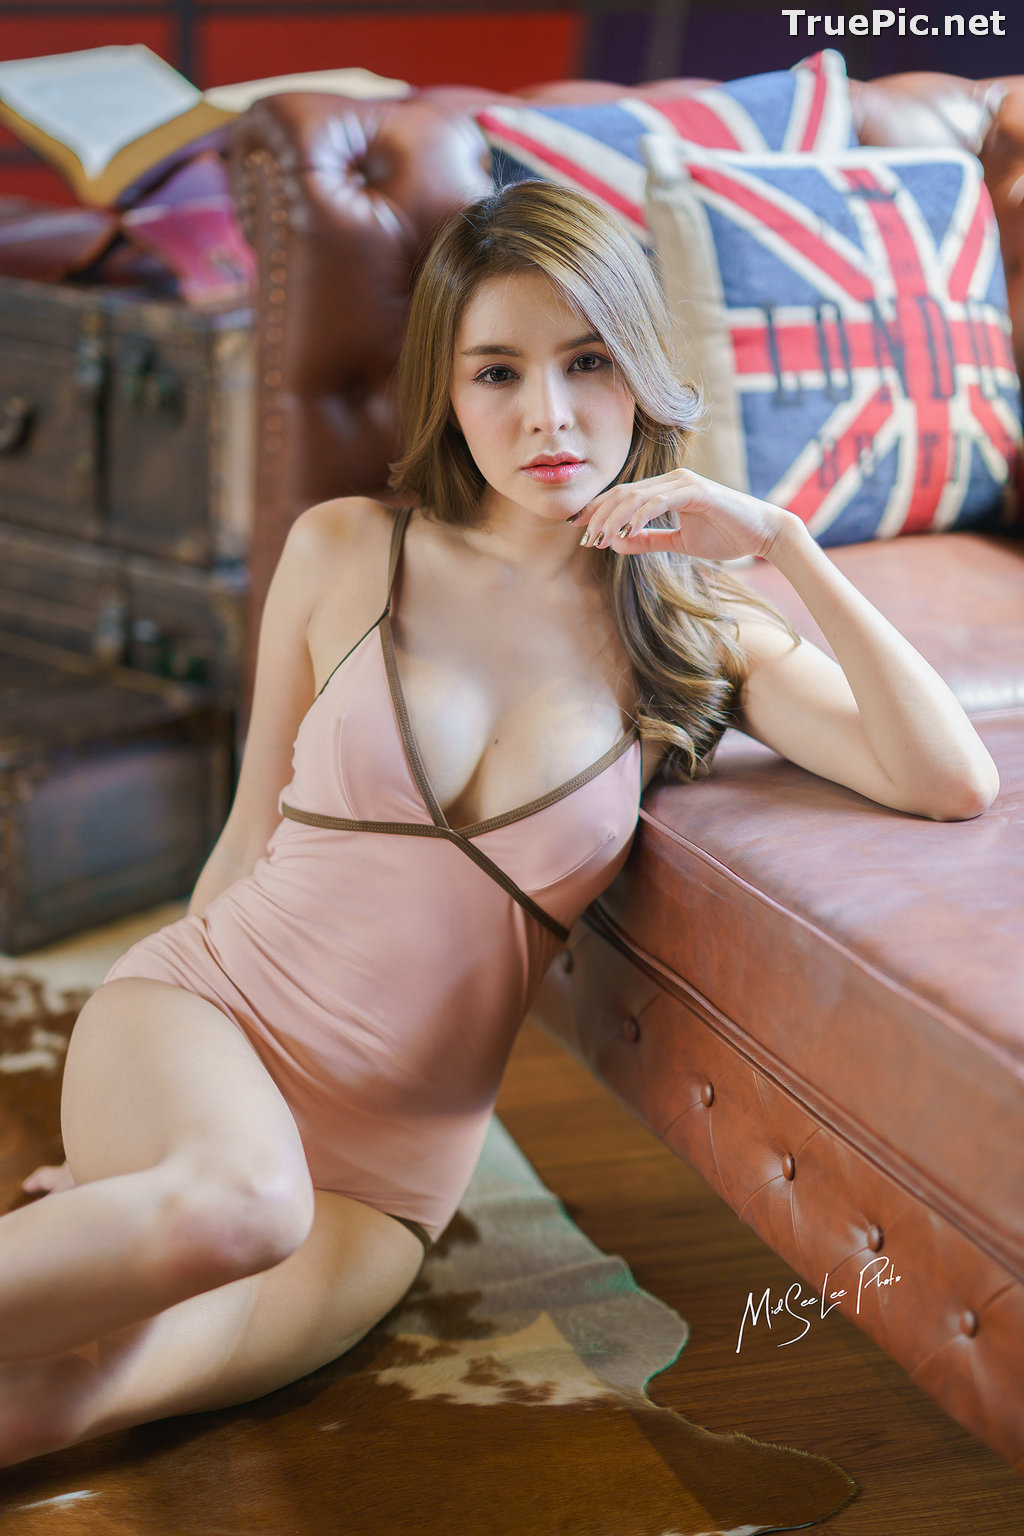 Image Thailand Model - Soithip Palwongpaisal - Sexy and Cute Monokini - TruePic.net - Picture-2